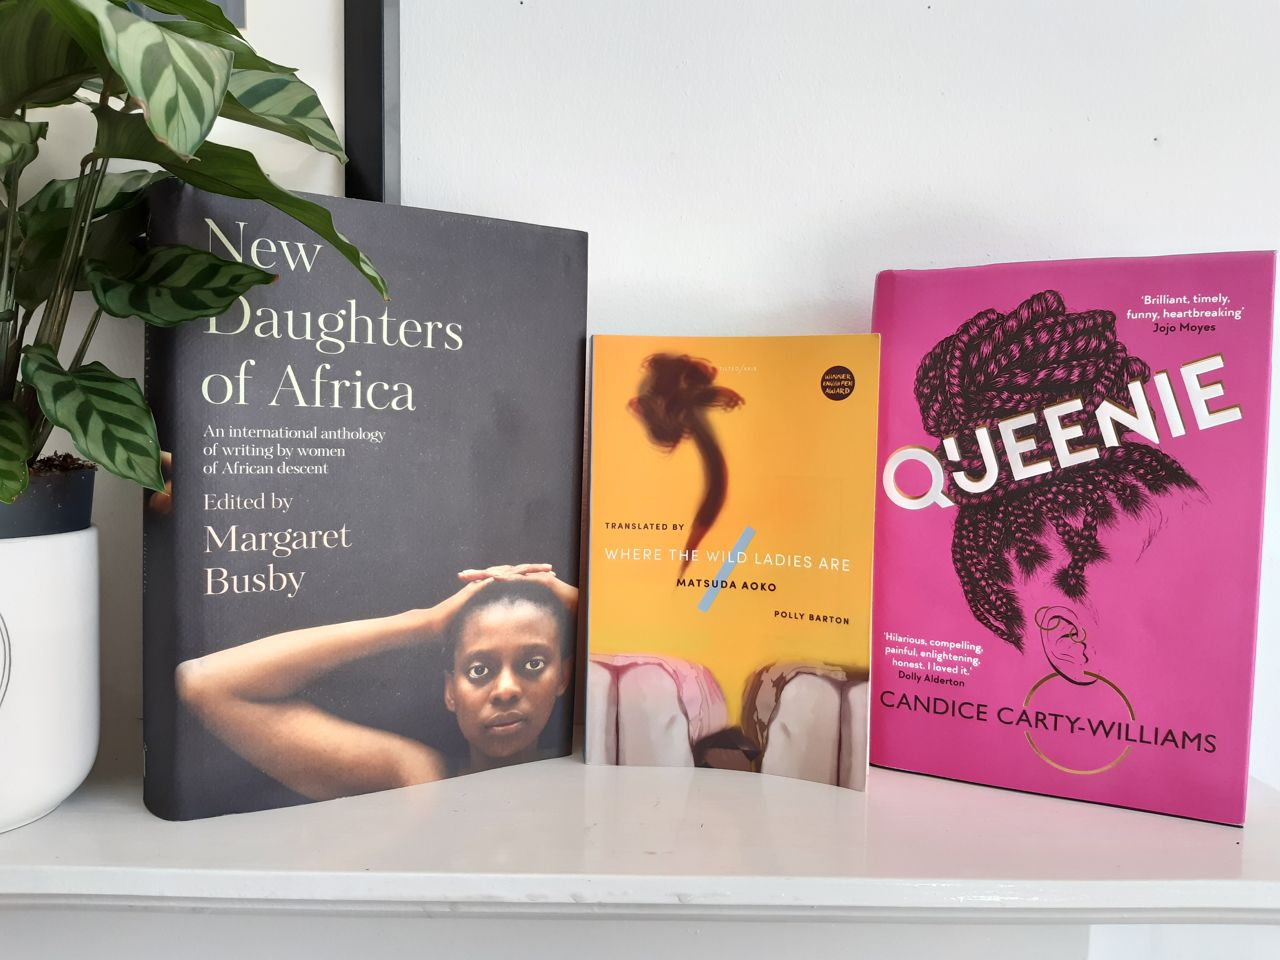 Three books standing on a shelf with a plant. The books are New Daughters of Africa, edited by Margaret Busby, which has a black cover with a photo of a black woman looking directly at the reader, her hands clasped behind her head; Where the Wild Ladies Are, by Matsuda Aoko, a yellow cover with a dark abstract shape in the top half, and an illustration of the knees of two women in skirts sitting beside each other; Queenie, by Candace Carty-Williams, a deep pink cover with the head of a black woman in profile, her face not visible, and long braids pulled up into a bun.